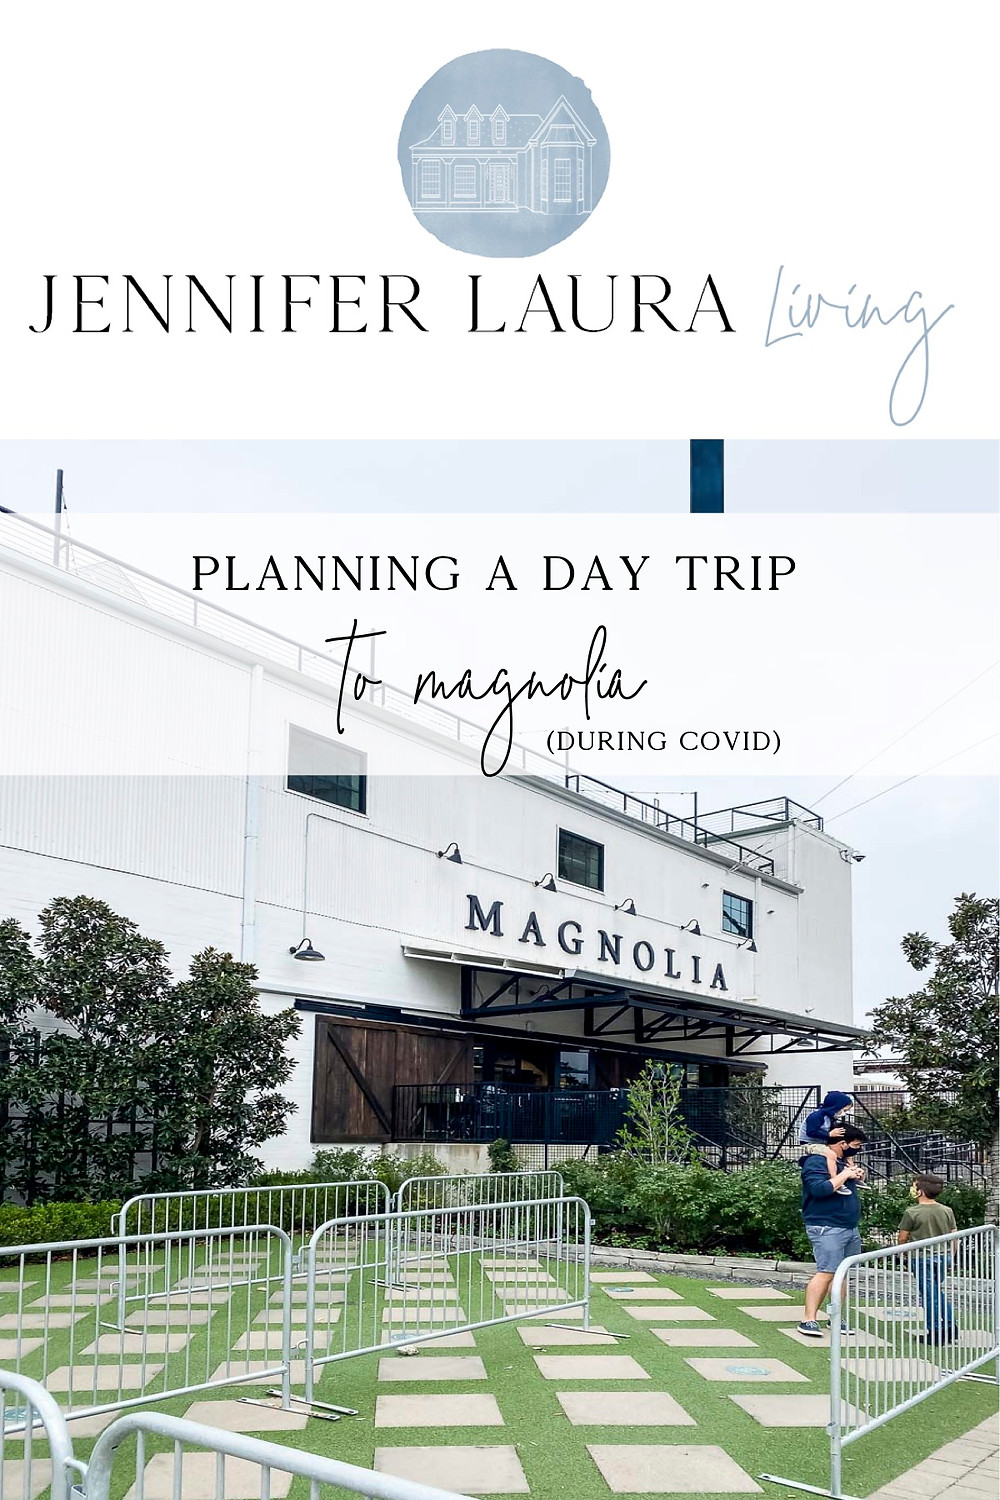 Jennifer Laura Living _ Magnolia Market and Silos trip planning information, how to plan a trip to magnolia